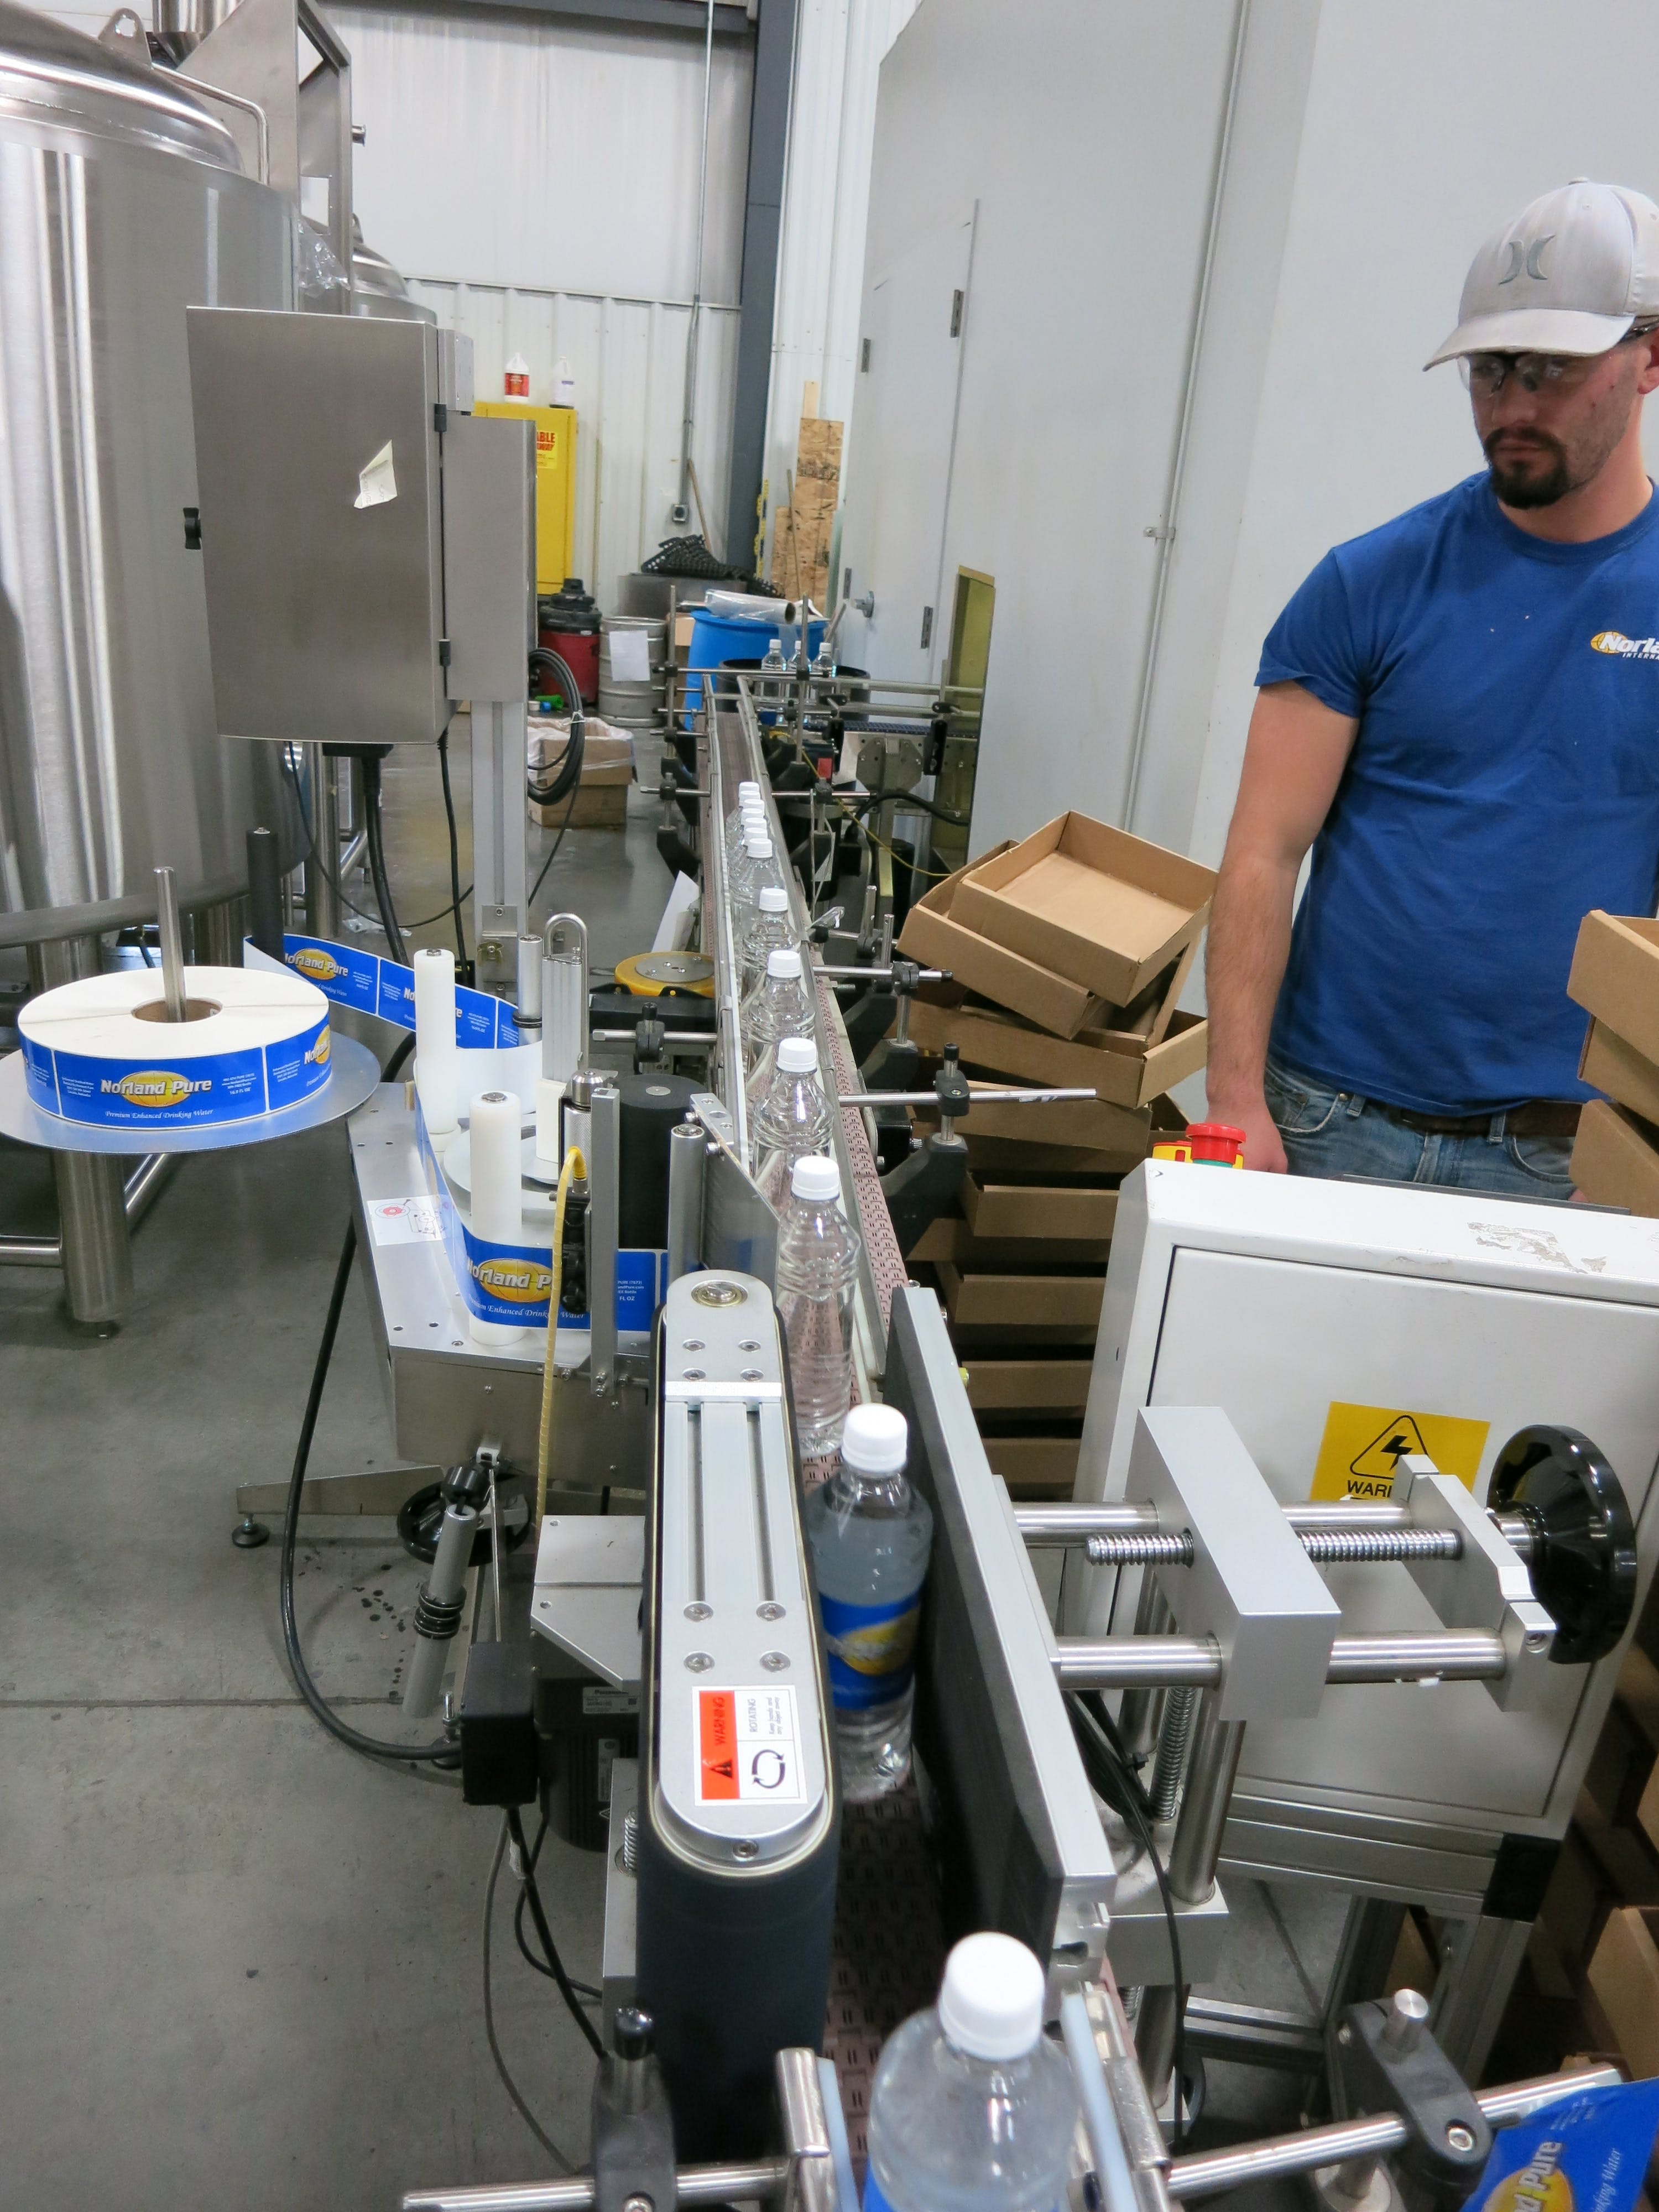 LC 5000 Labler Bottle labeler sold by American Beer Equipment